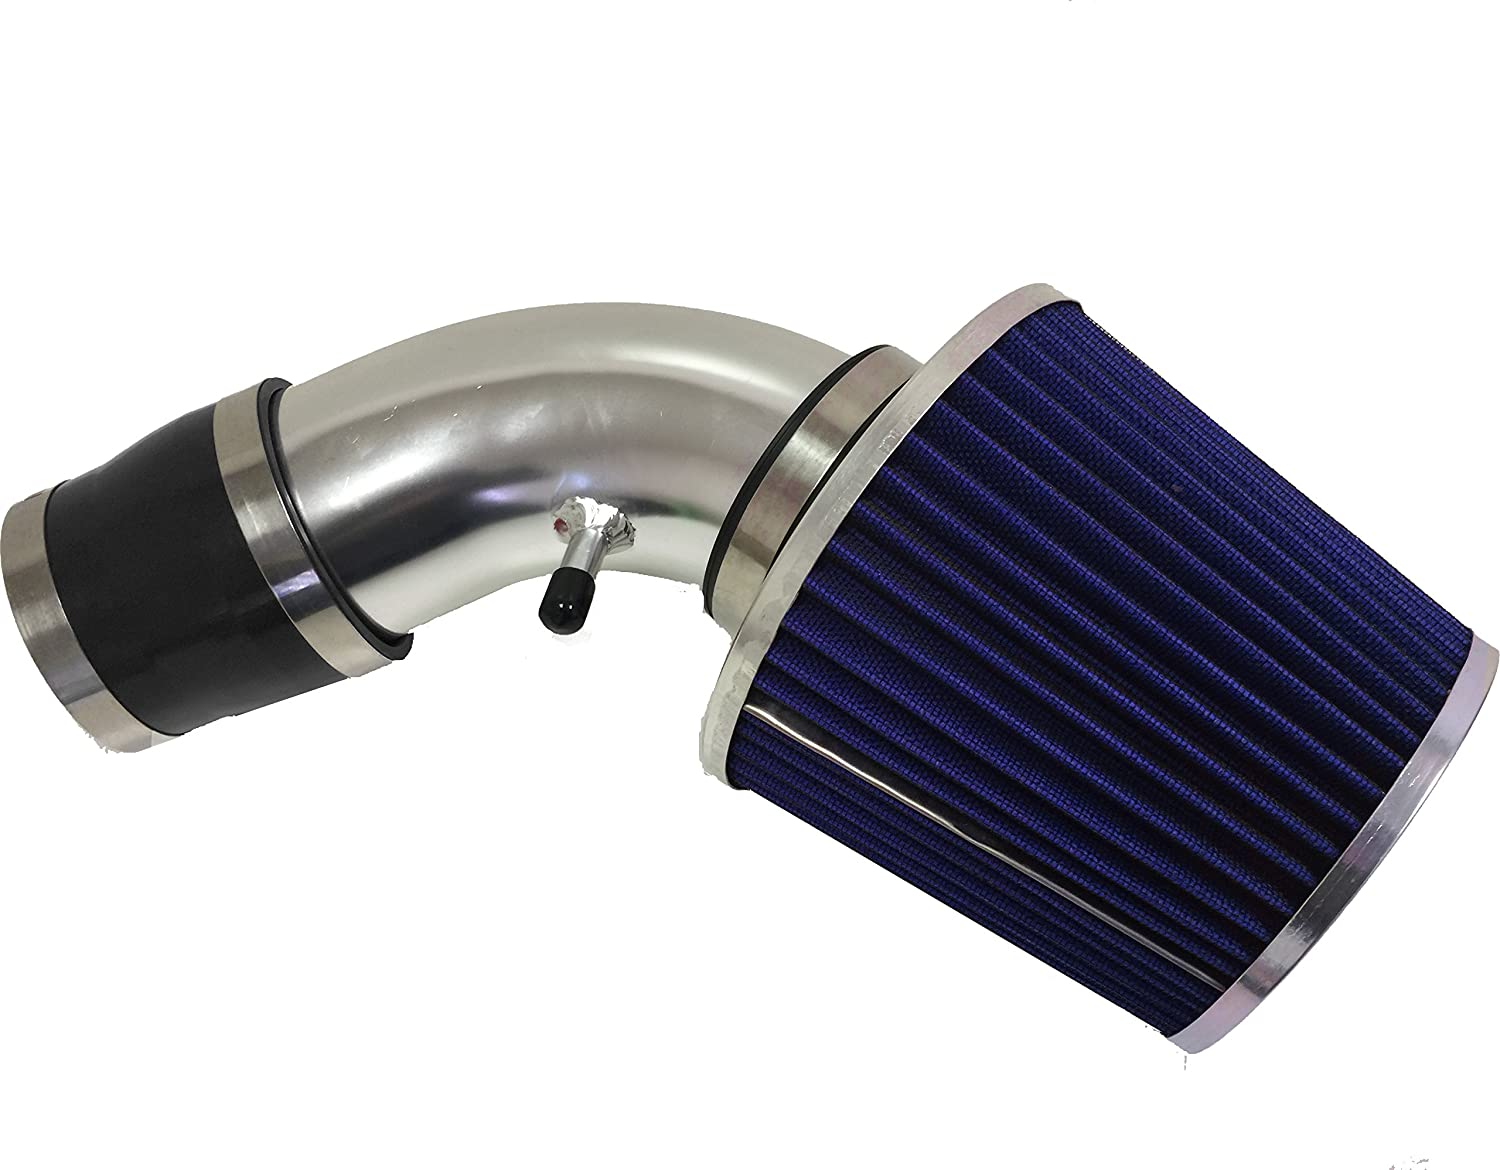 Red Filter /& Accessories 2000 2001 2002 2003 2004 2005 Chevy Impala Monte Carlo 3.4L V6 Full Air Intake Filter Kit System